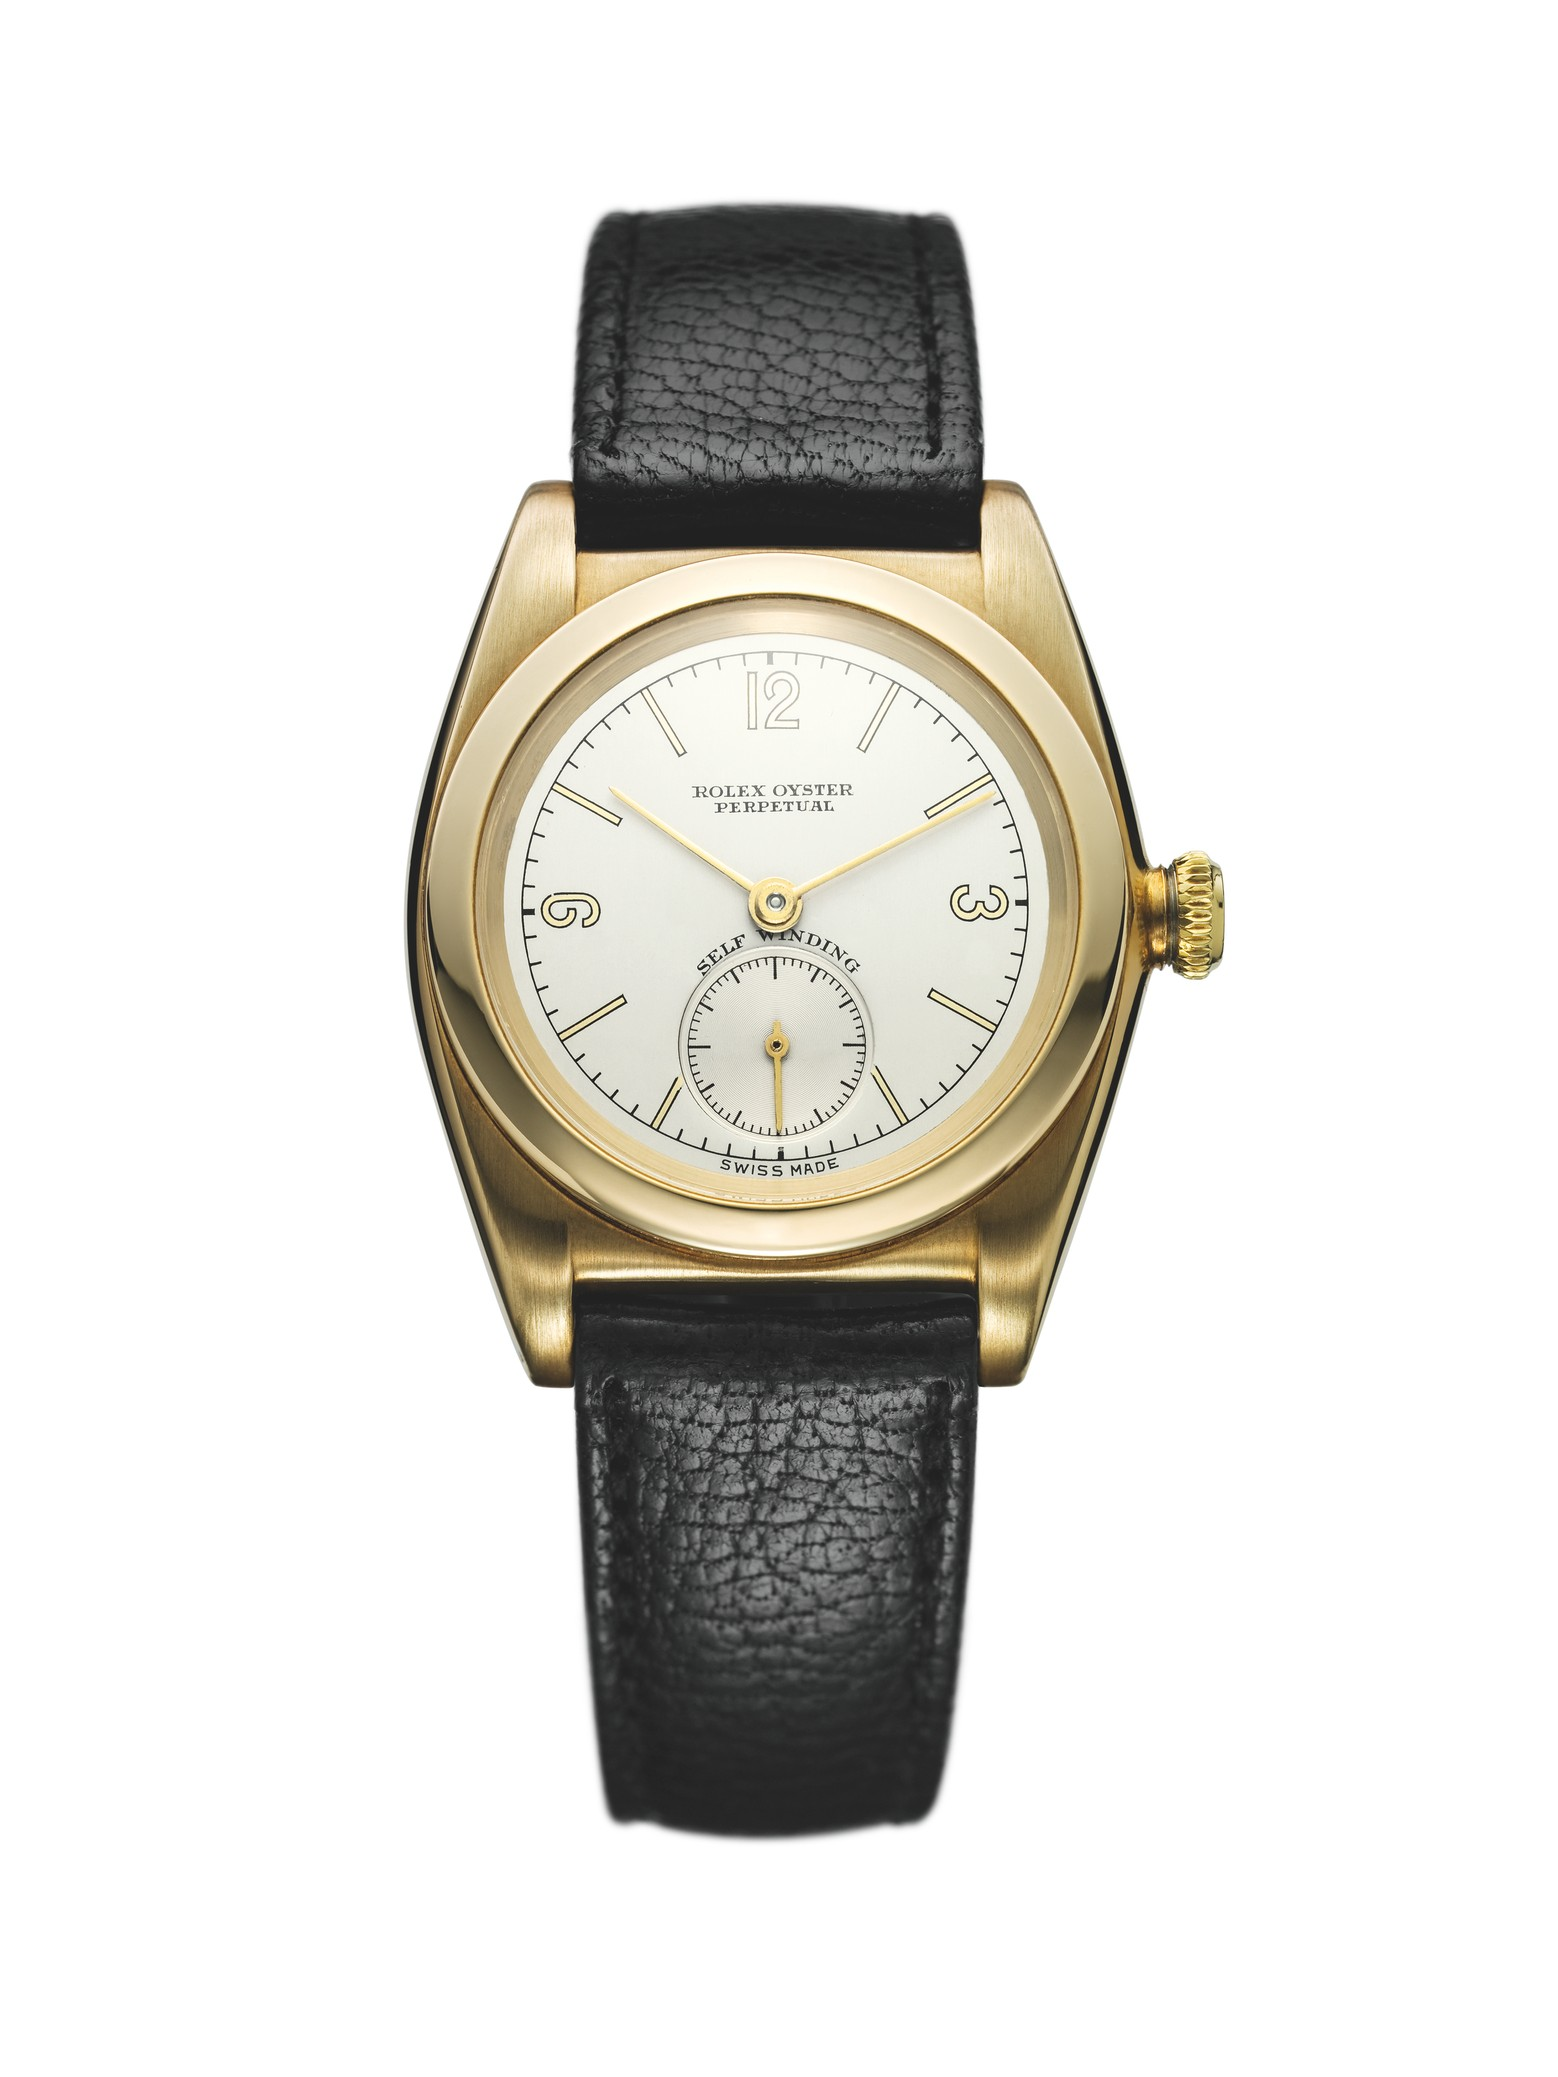 First Rolex Oyster Perpetual, circa 1931